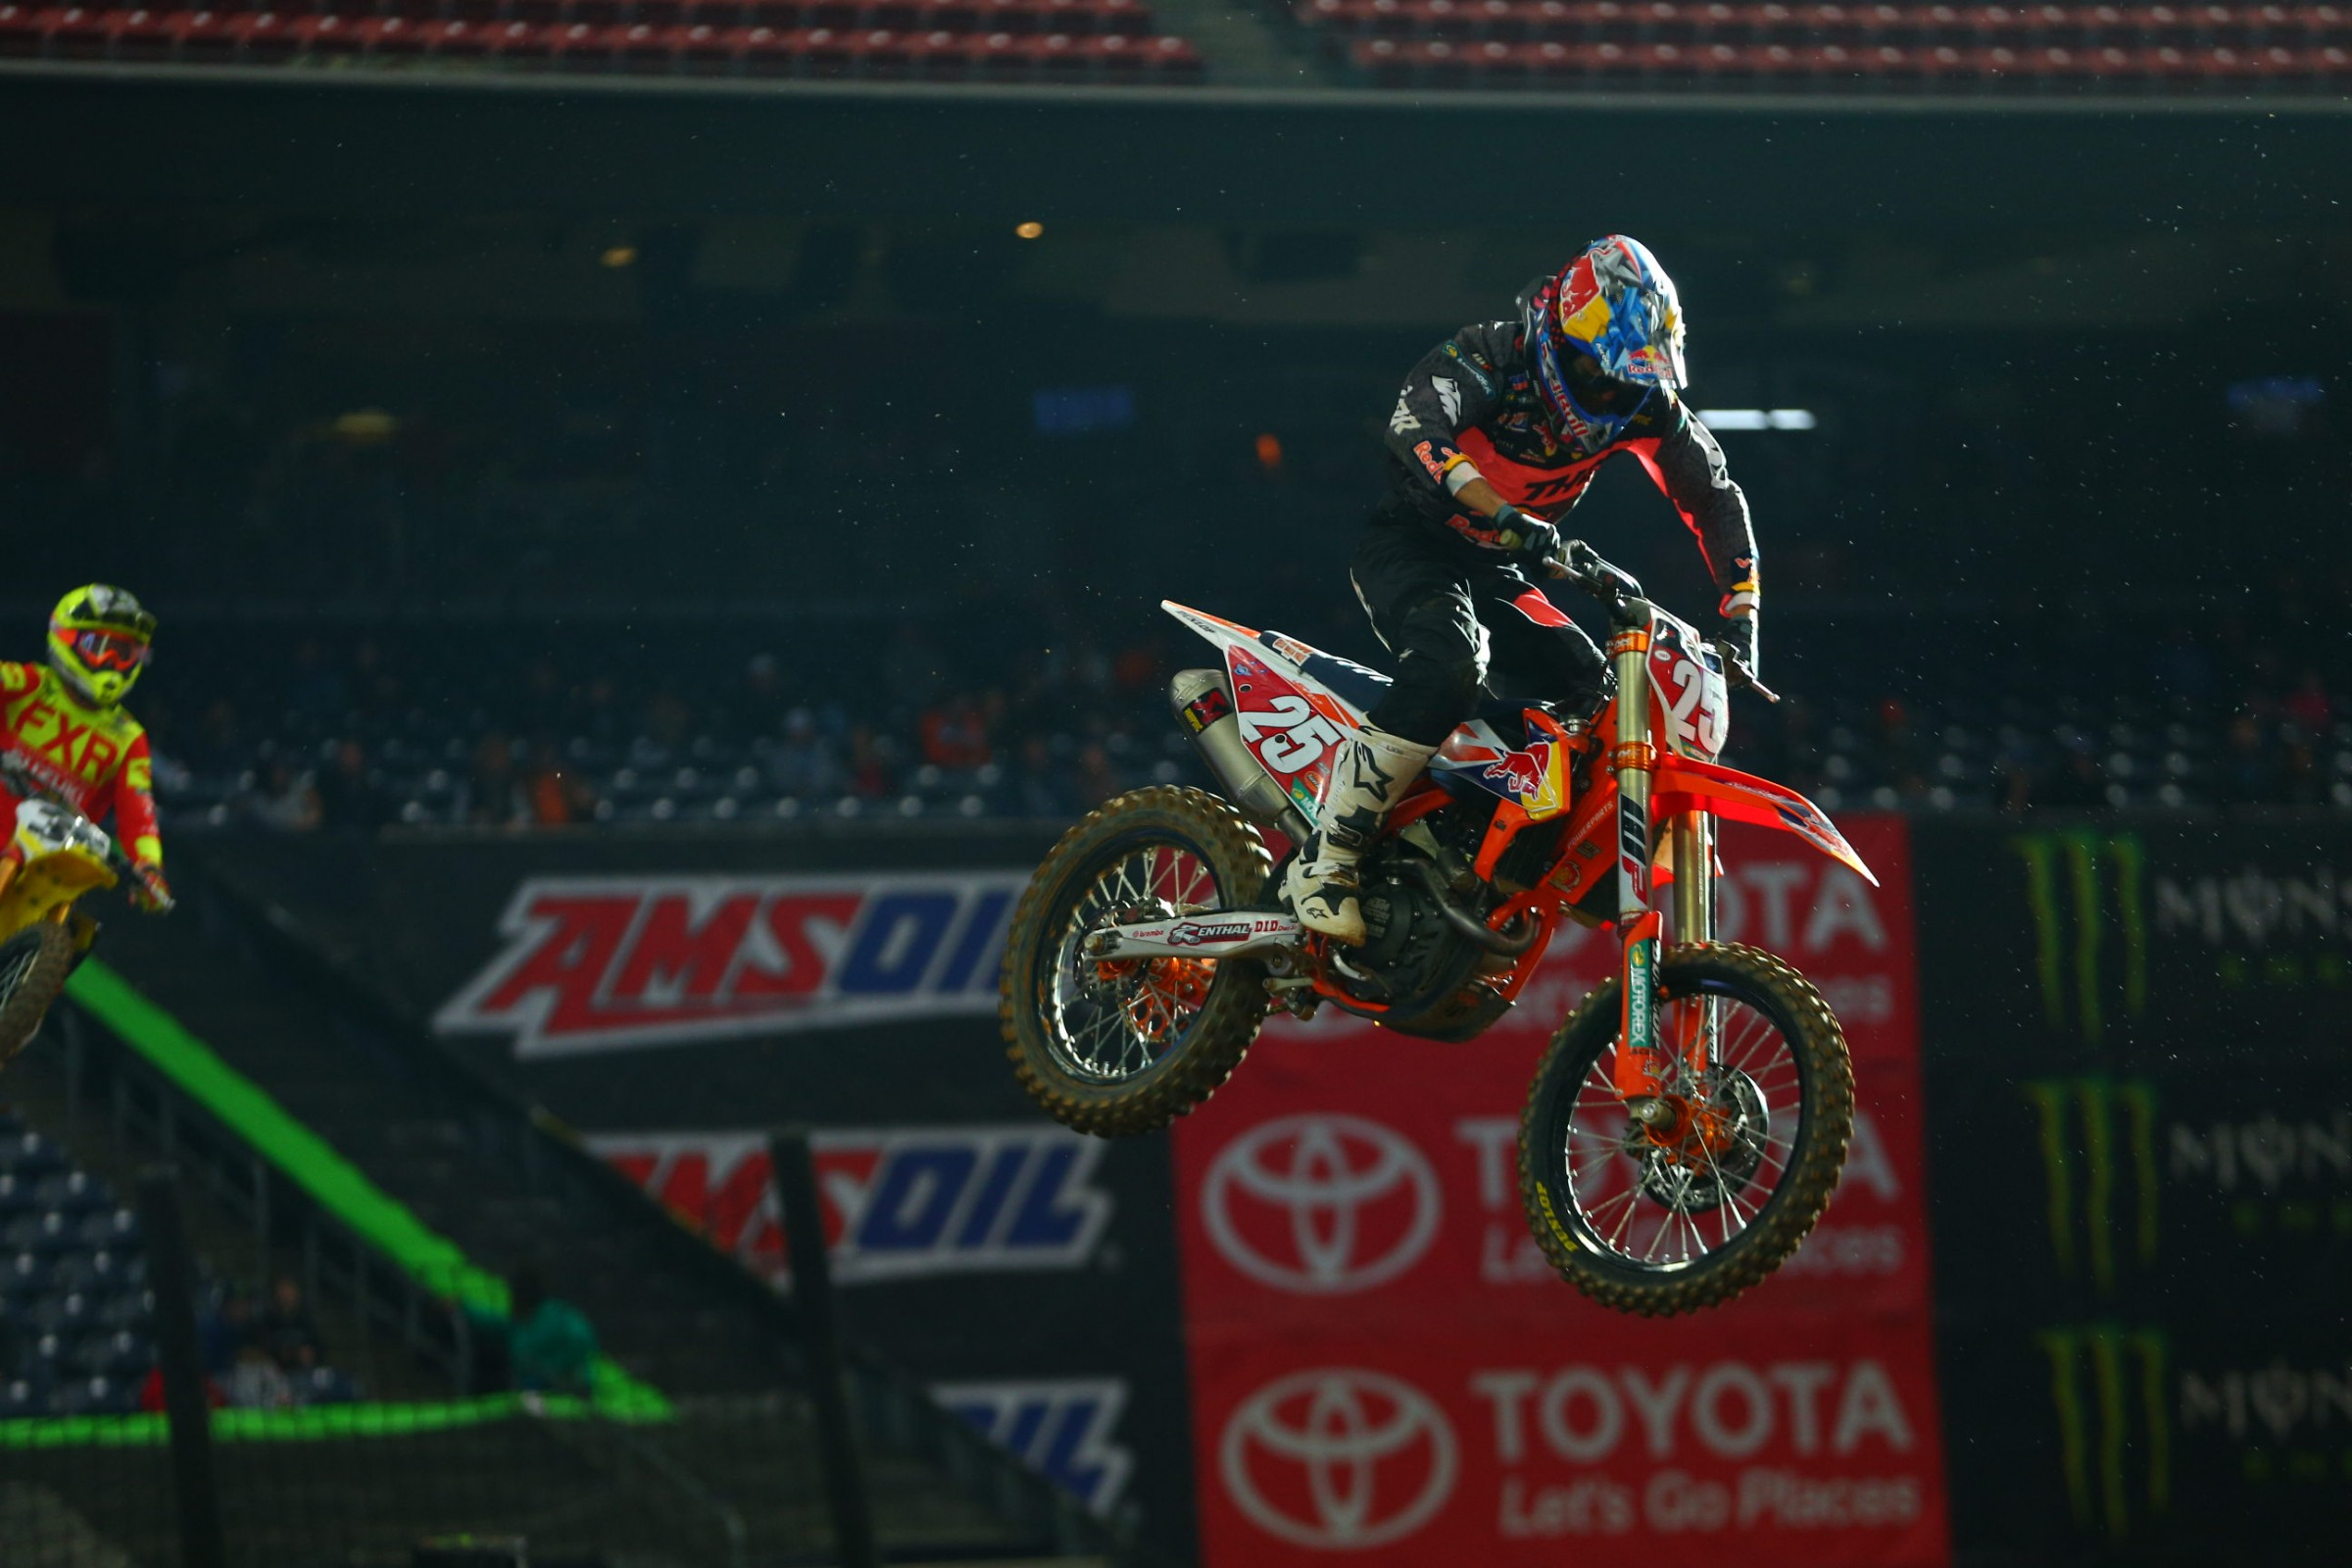 Musquin goes from points leader to zero points scored at round two. He hopes to be back for round three.